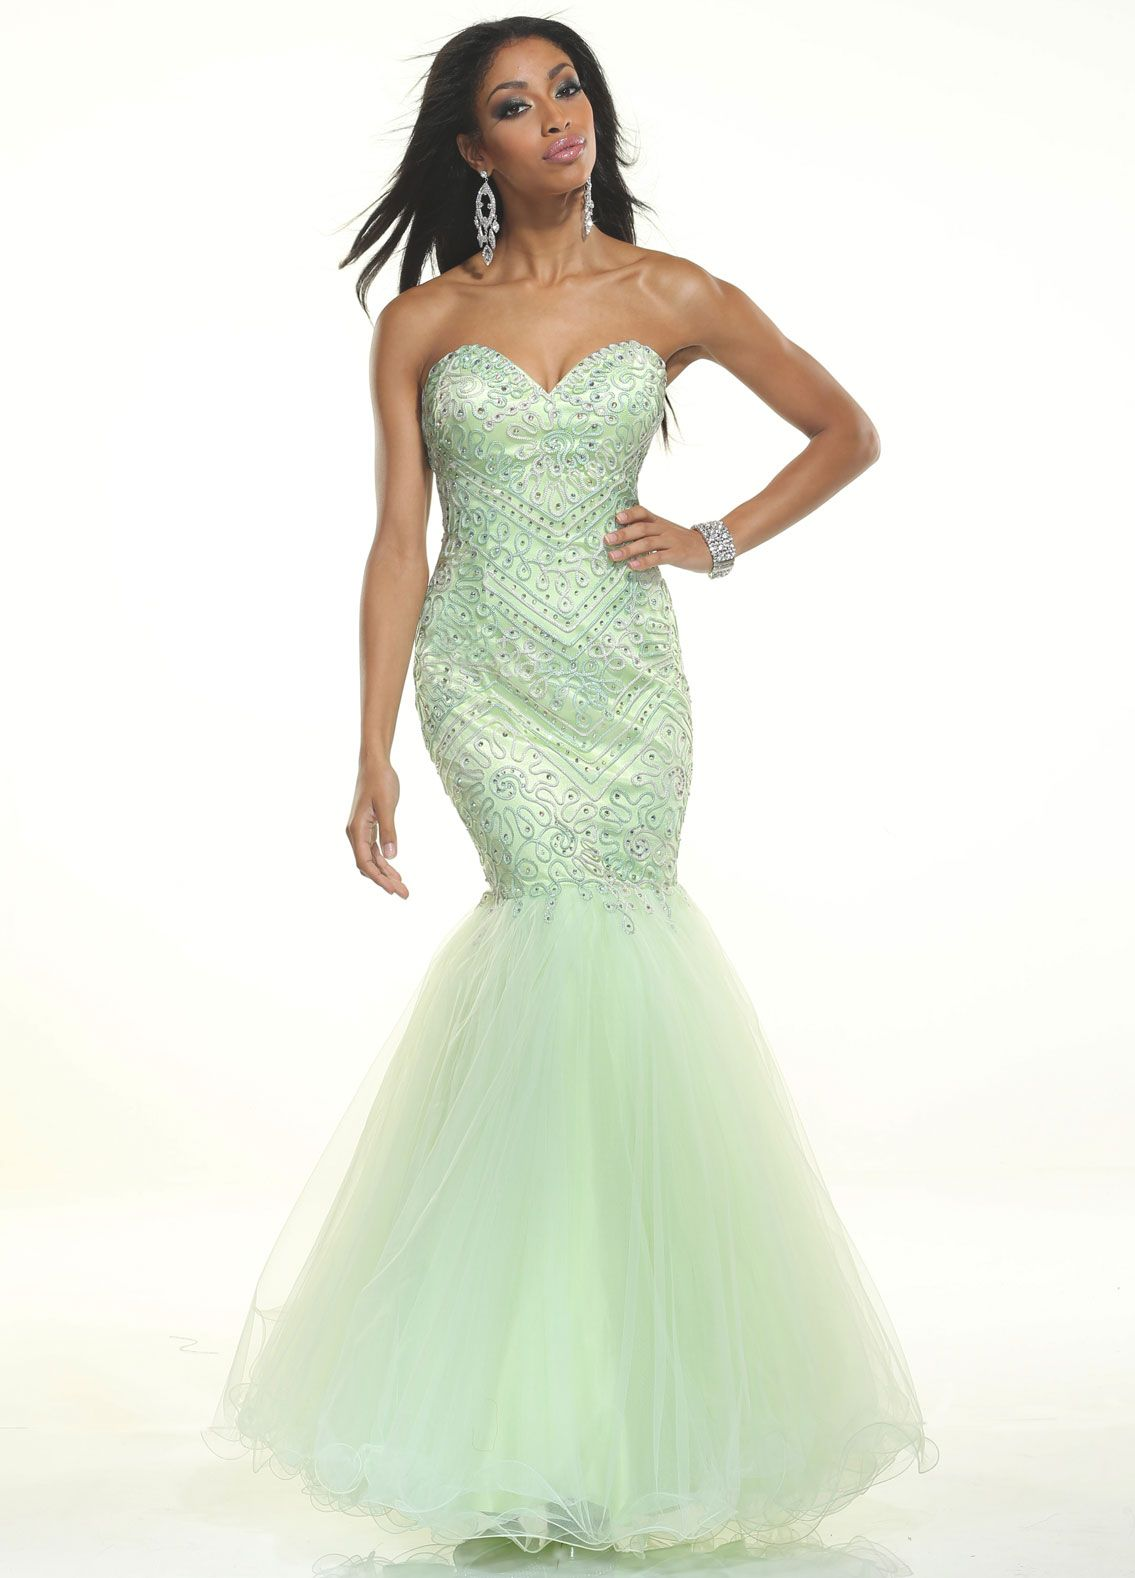 Disney forever enchanted prom dresses passion for fashion